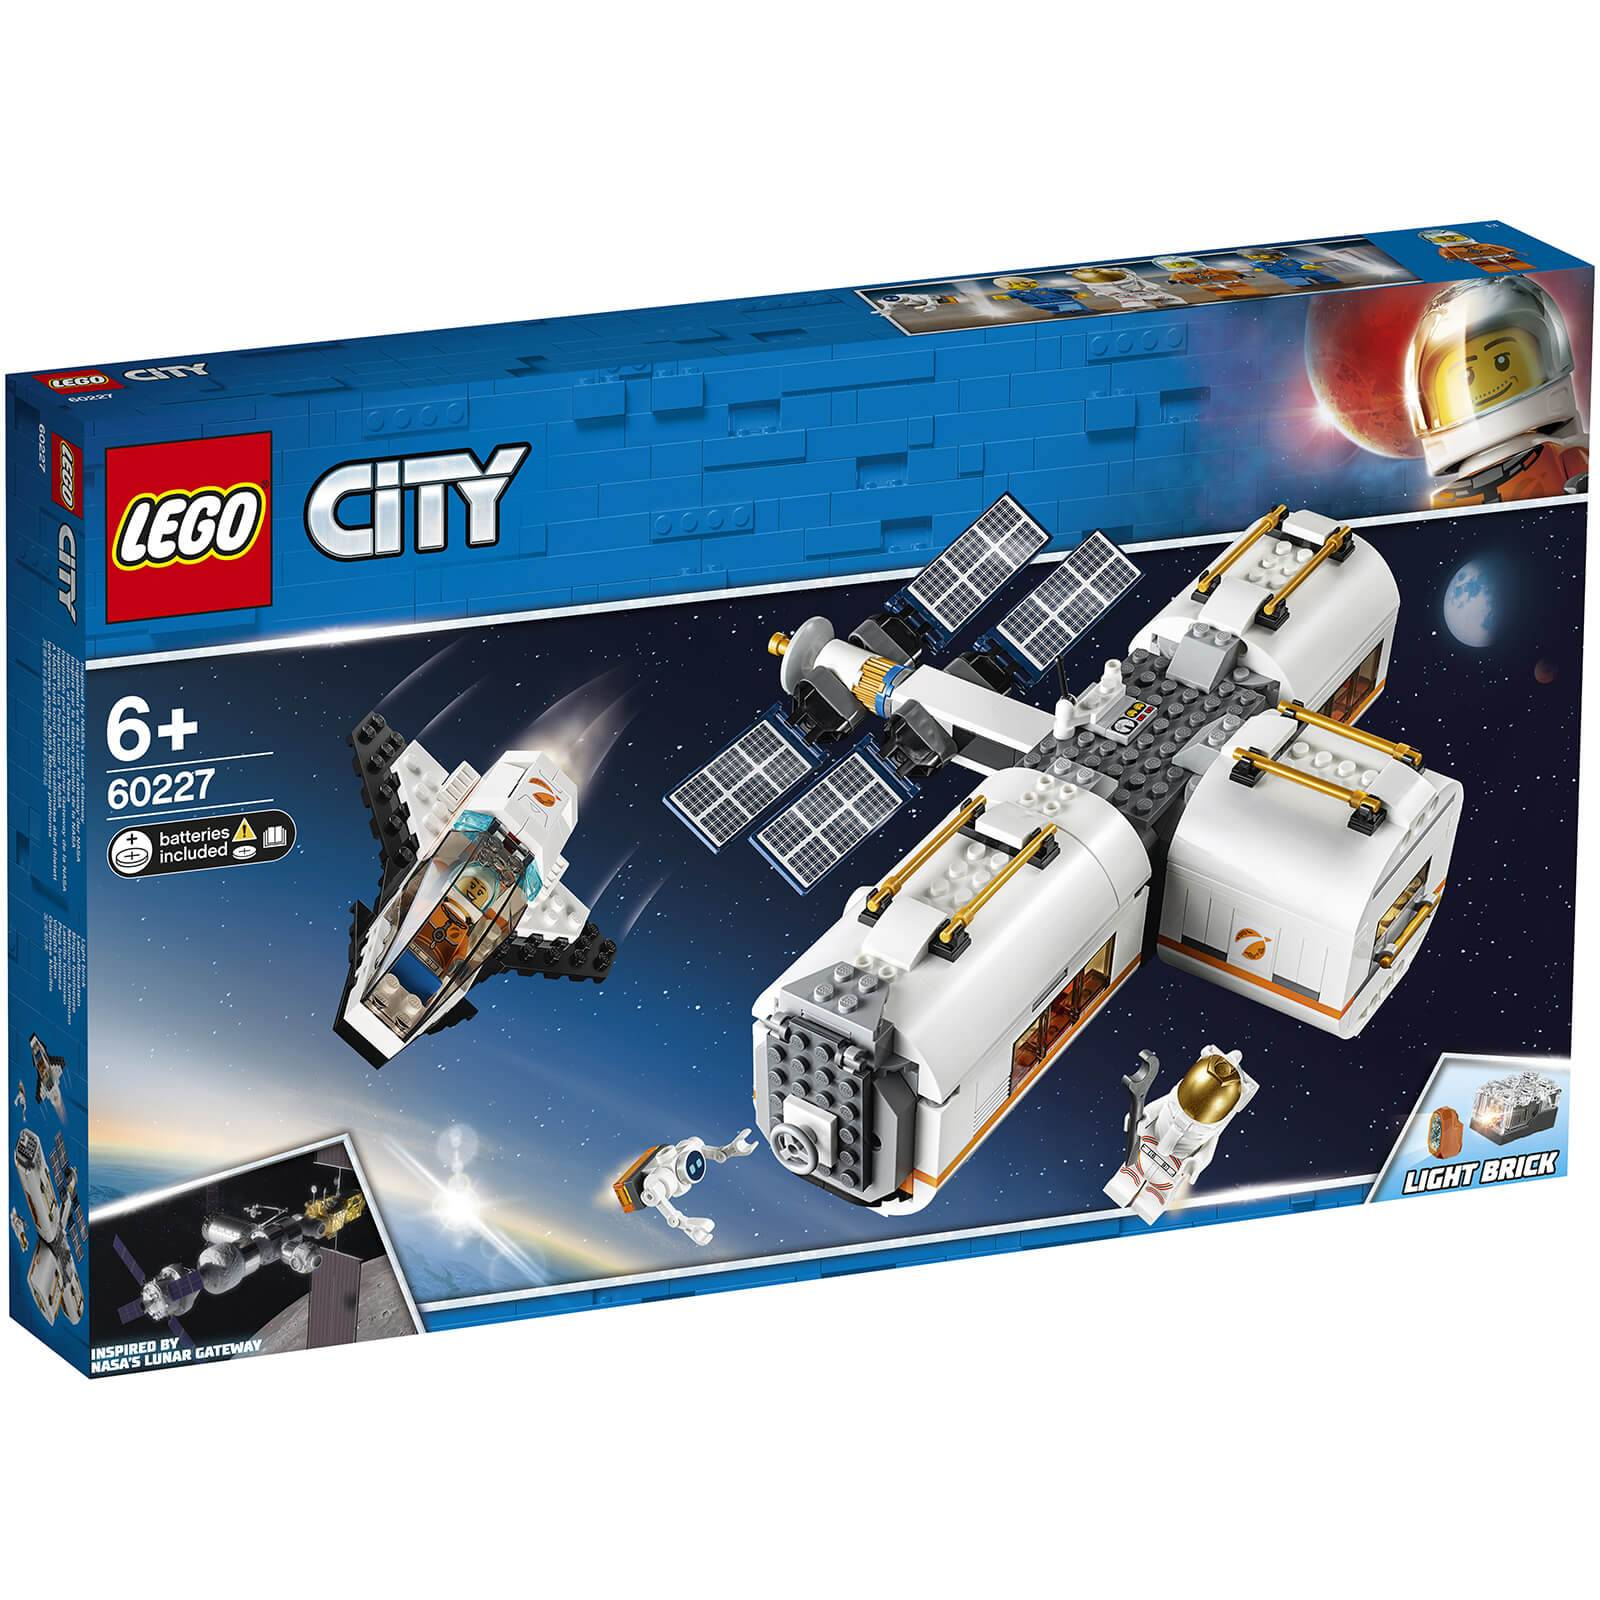 Lego City Space Port: Lunar Space Station (60227)